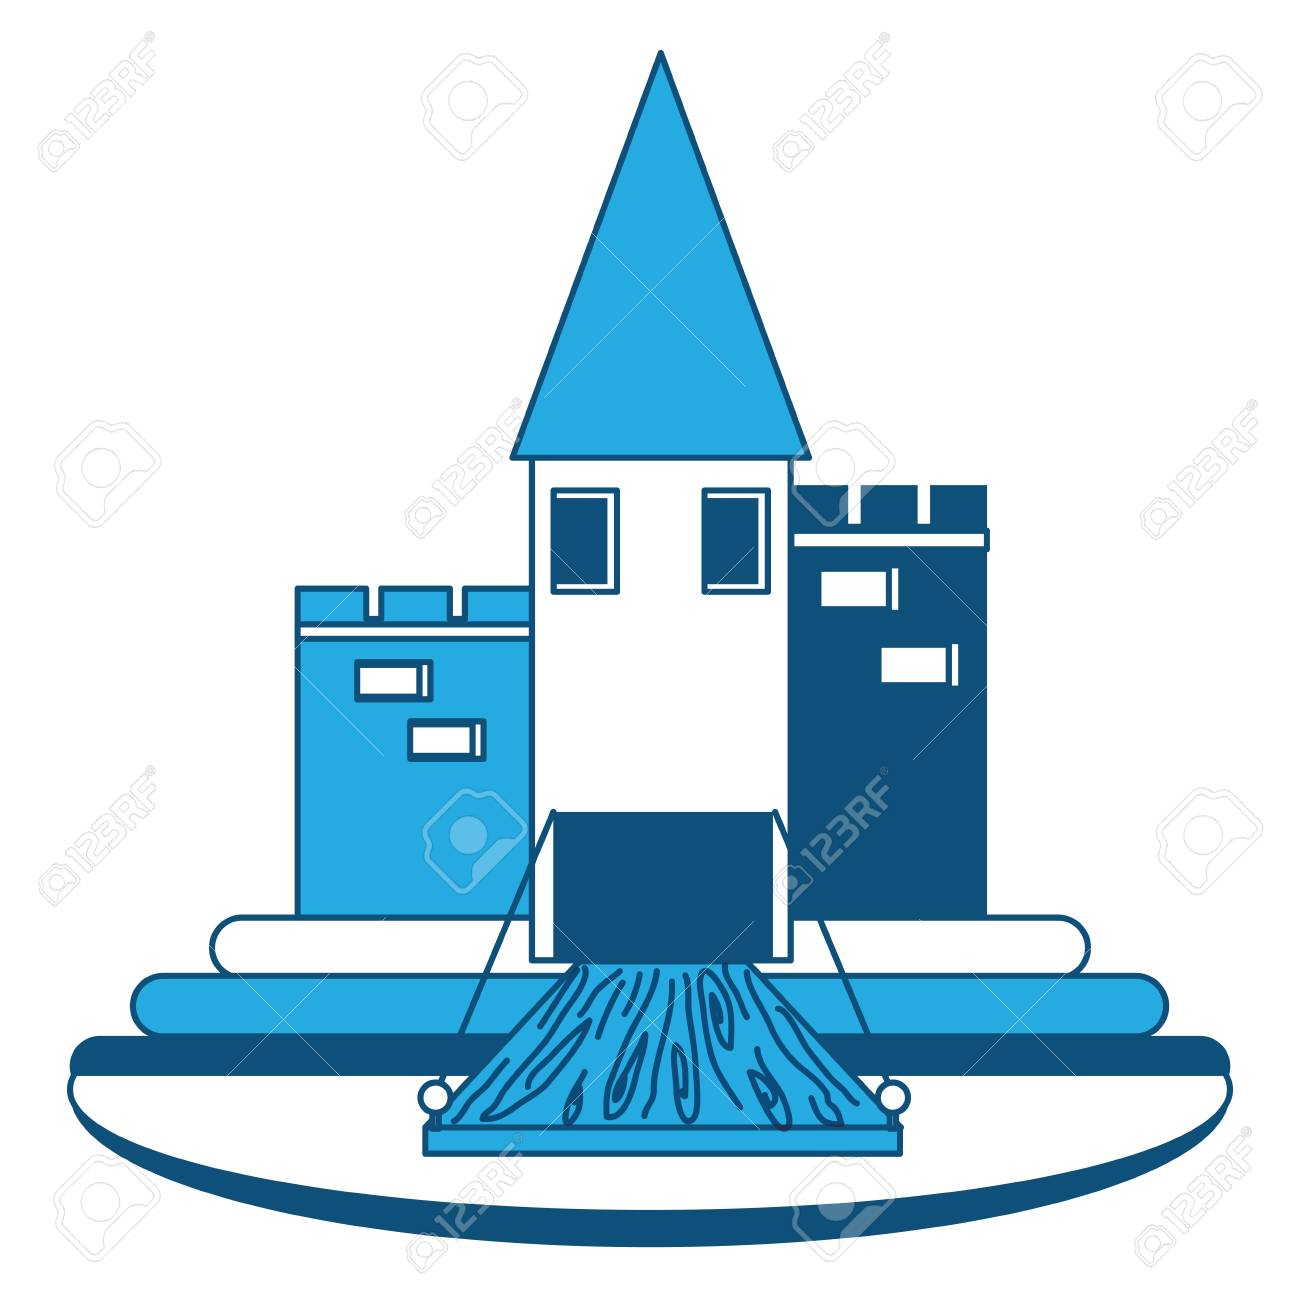 Medieval Castle Design Royalty Free Cliparts, Vectors, And Stock ...